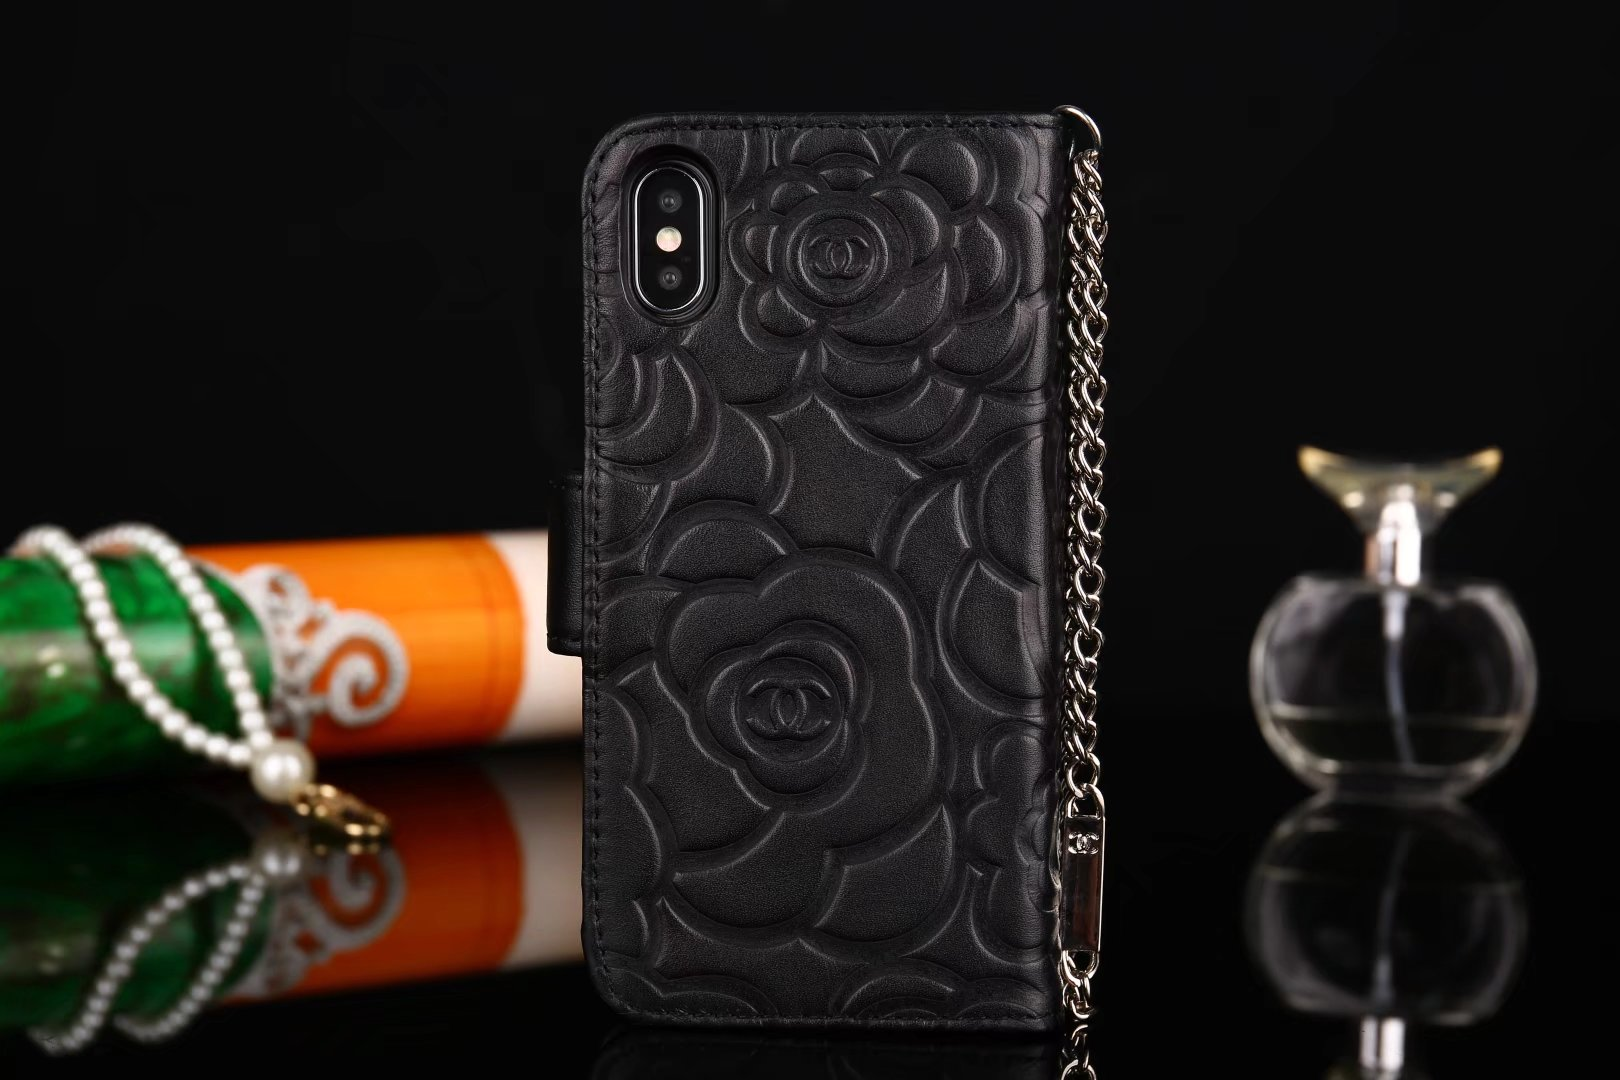 best iphone X cases branded iphone X cases Chanel iPhone X case designer iphone 8 wallet case cellphone covers iphone 6 case sale buy mobile phone case cell phone protector cases case cell